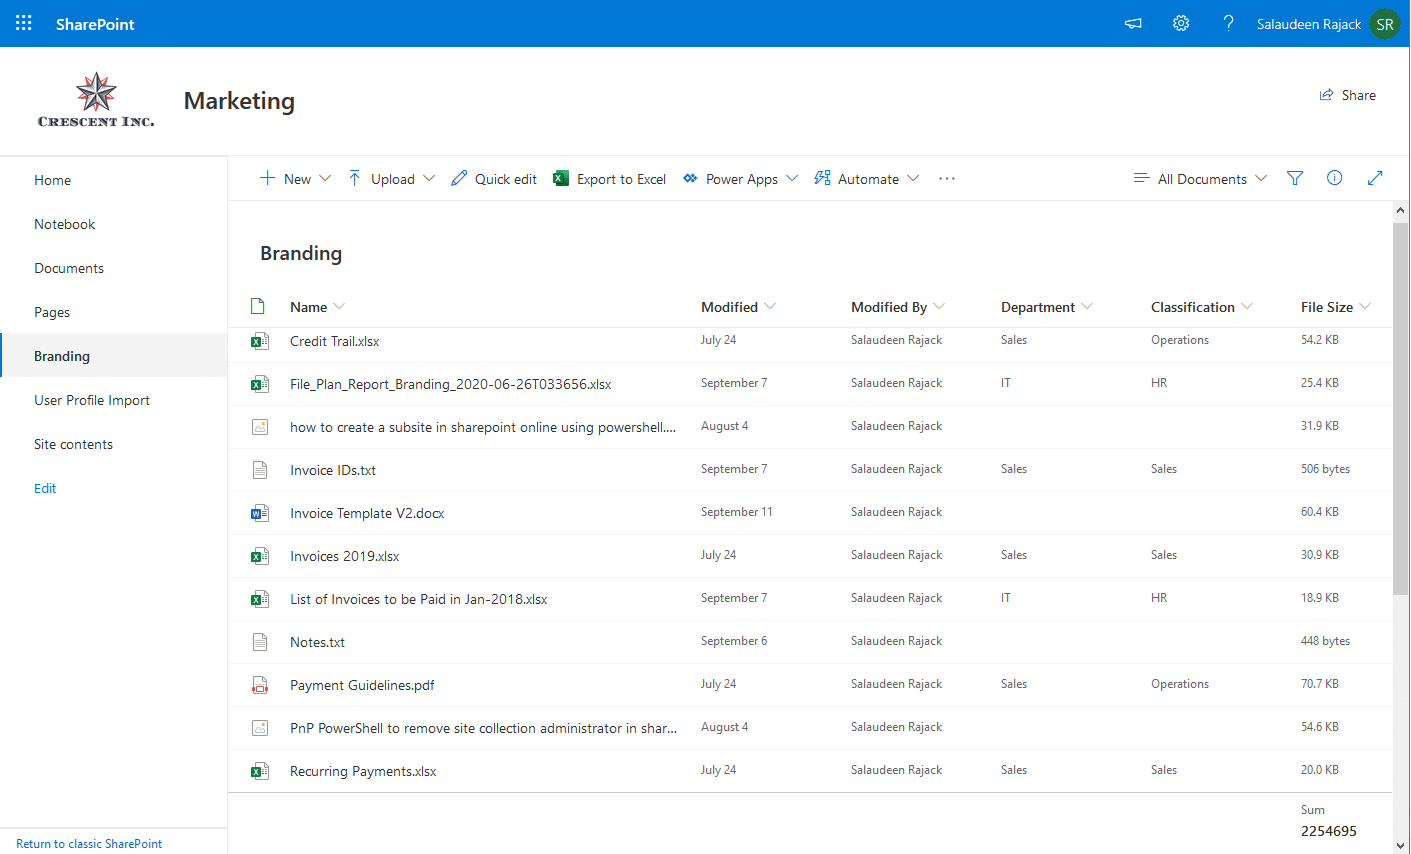 how to add file size column in sharepoint online